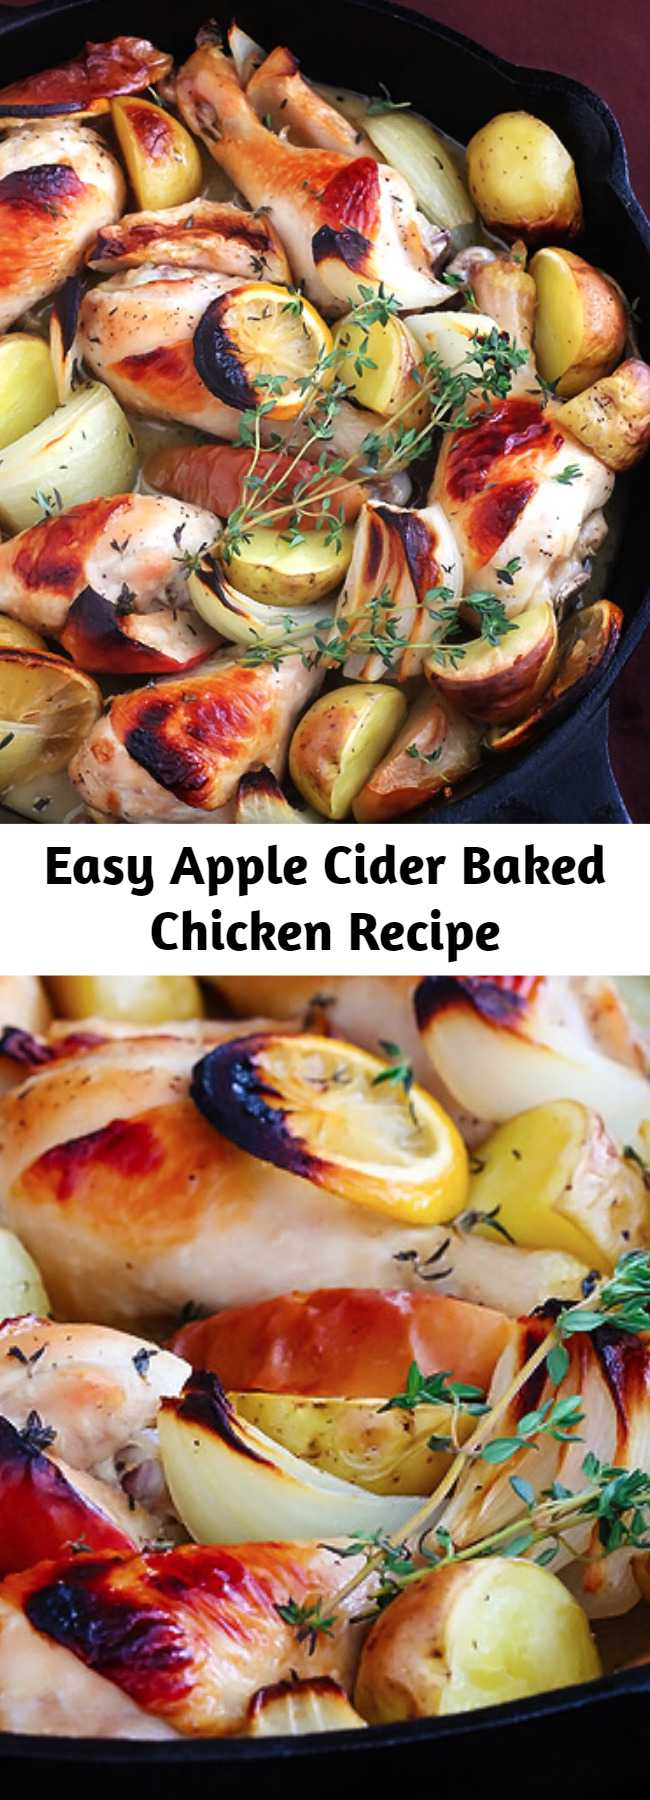 Easy Apple Cider Baked Chicken Recipe - Love apples and chicken? Then you are sure to love this Apple Cider Baked Chicken recipe! Blend your easy dinner favorites with the flavor of the season.